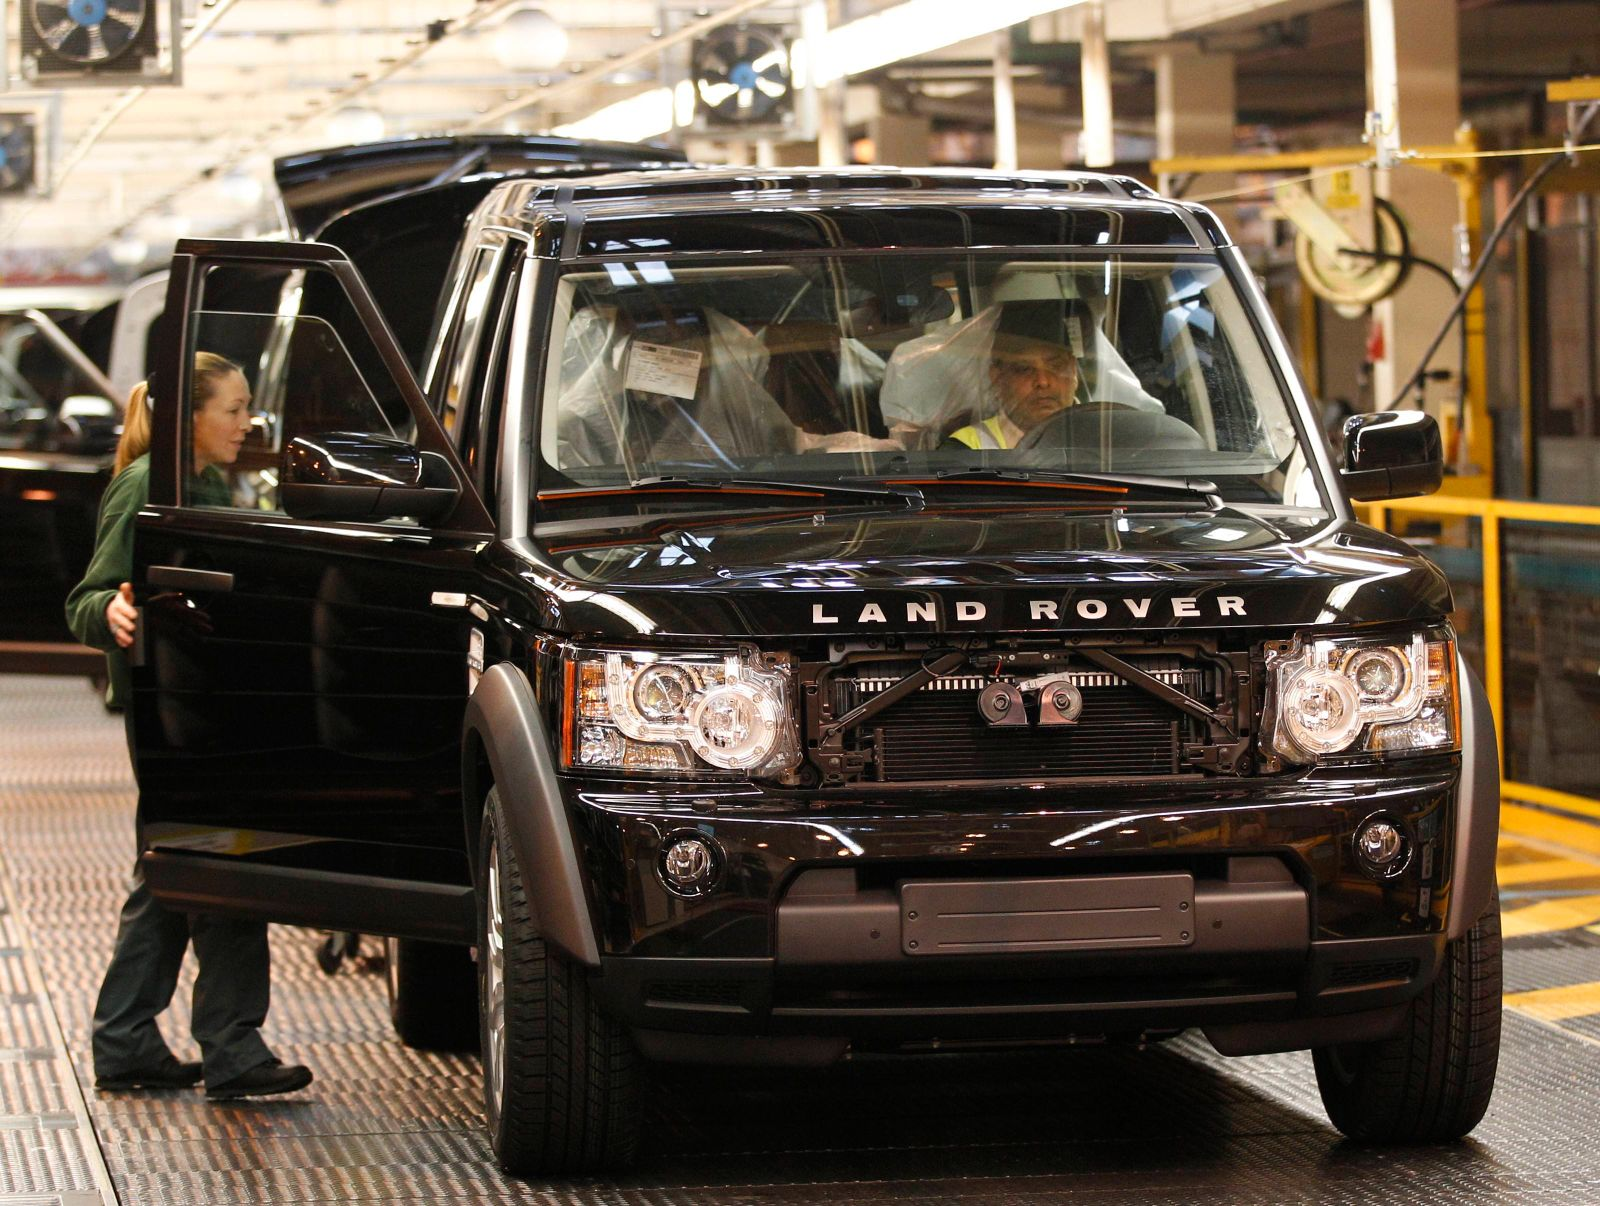 Workers inspect a Land Rover Discovery on the production line at their factory in Solihull